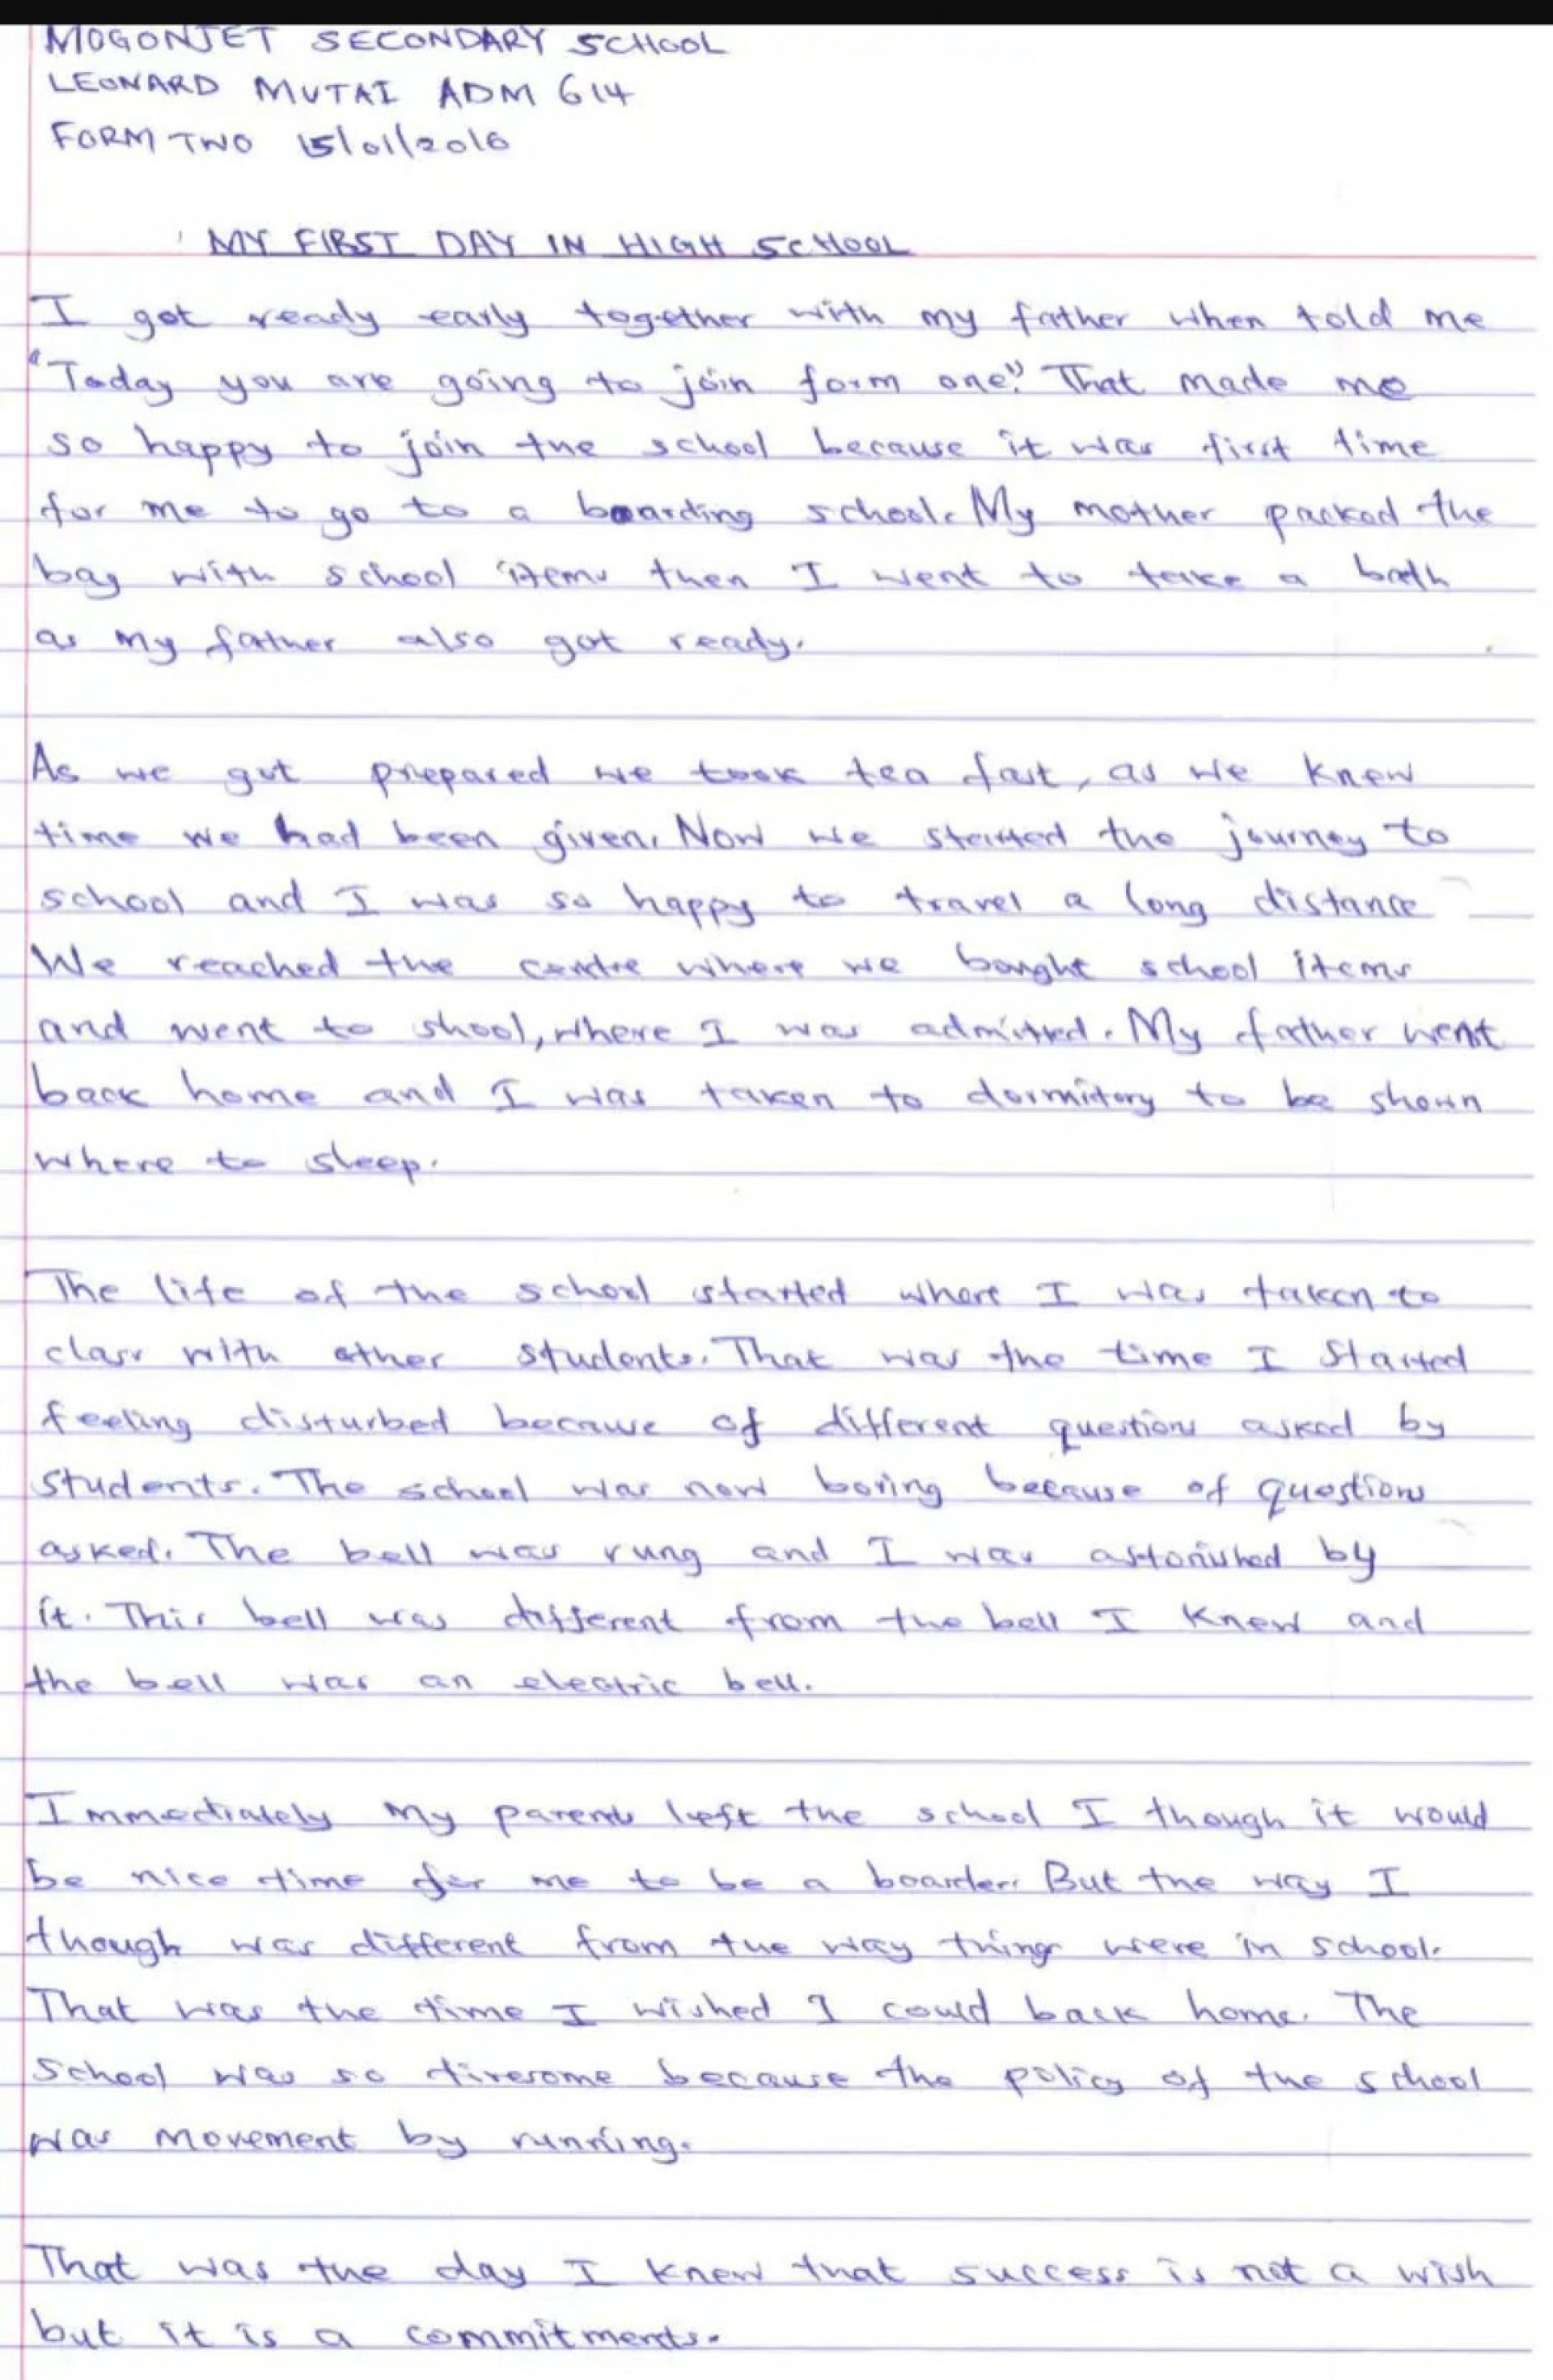 014 Essay Example First Day Of School Marvelous High Titles For In Hindi Class 4 1920